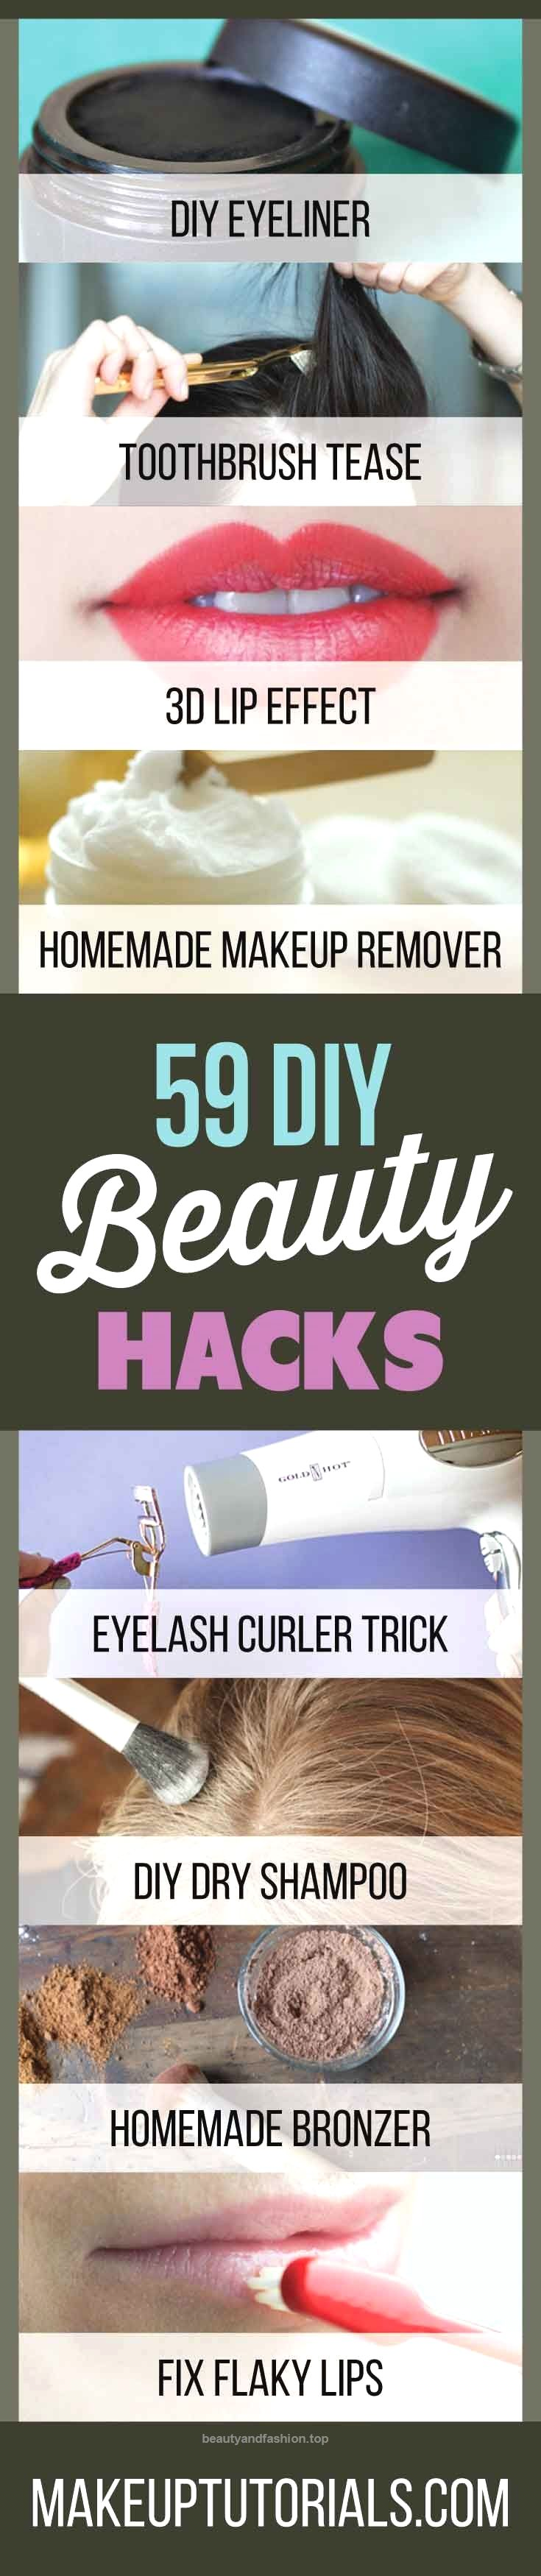 59 DIY Beauty Tutorials | Beauty Hacks You Need To Know About – Makeup Tutoria…